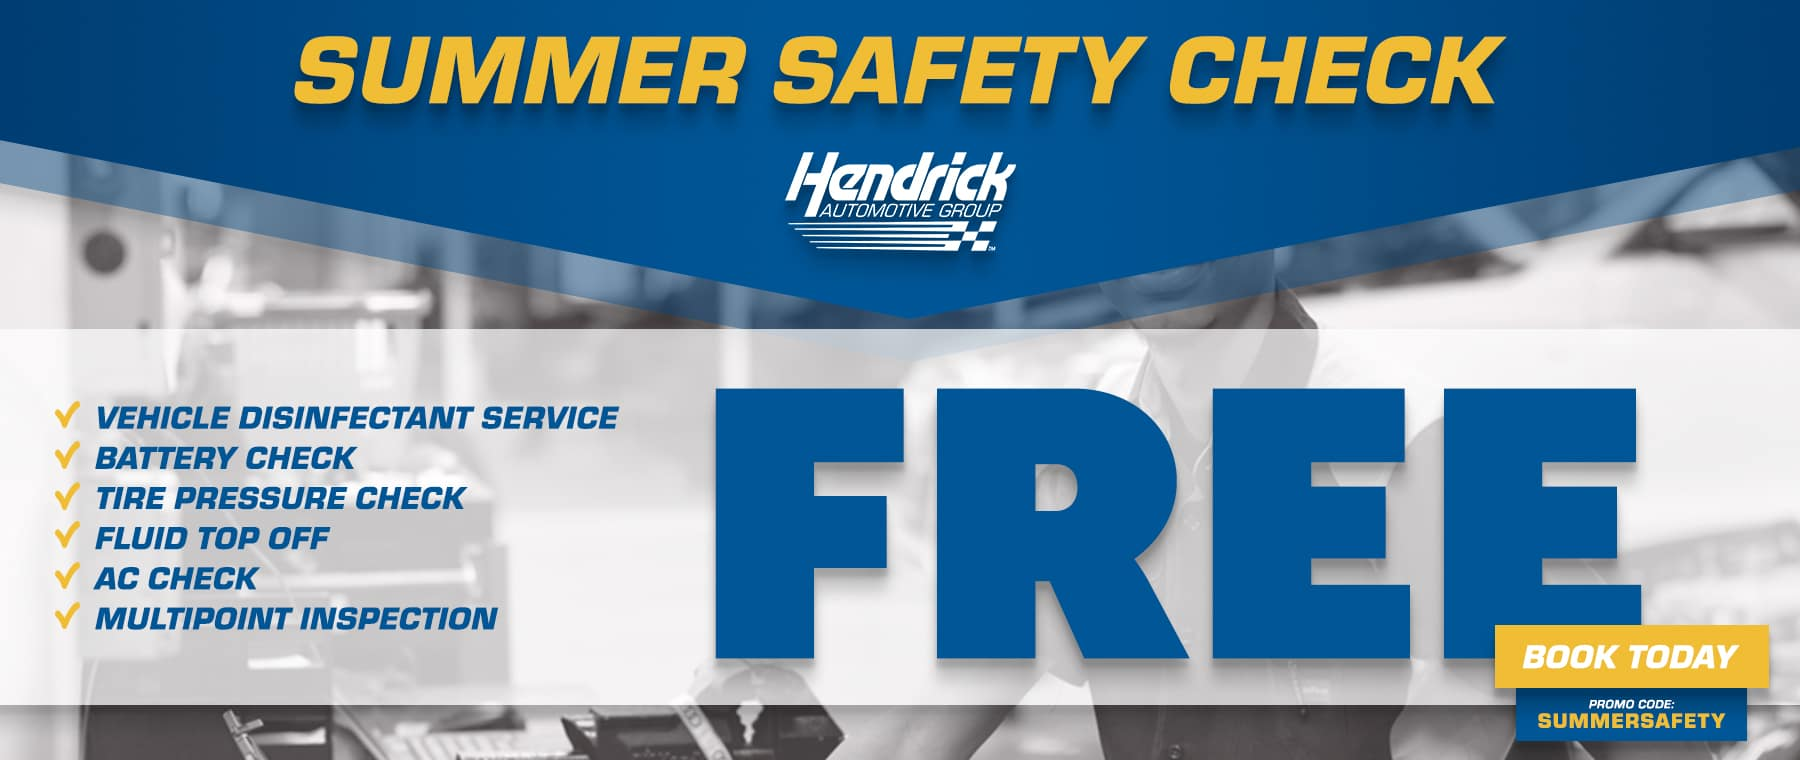 summer safety check at hendrick automotive group